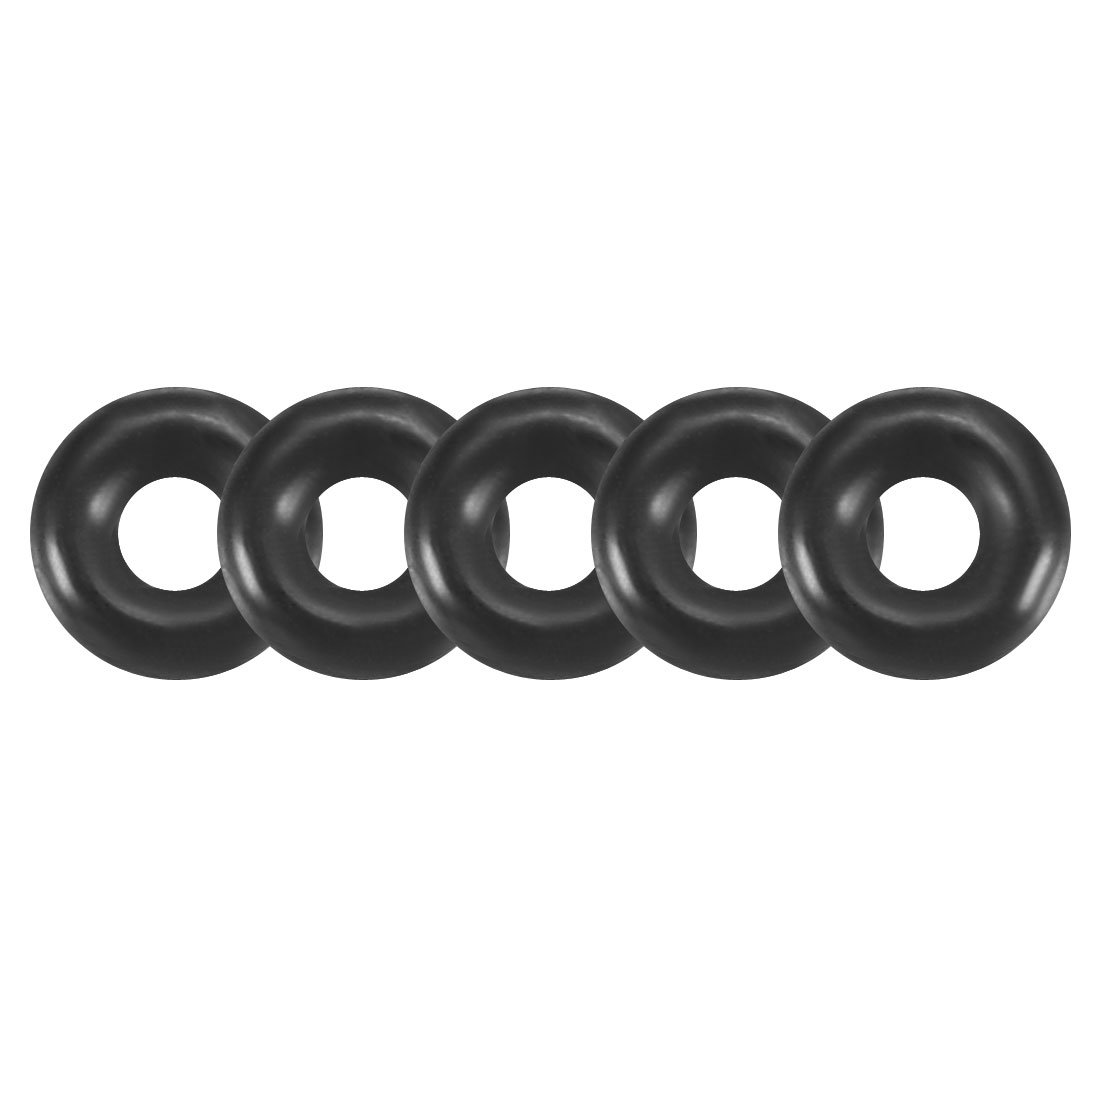 100Pcs 3.2x1mm Nitrile Rubber O-rings Heat Resistant Sealing Ring Grommets Black